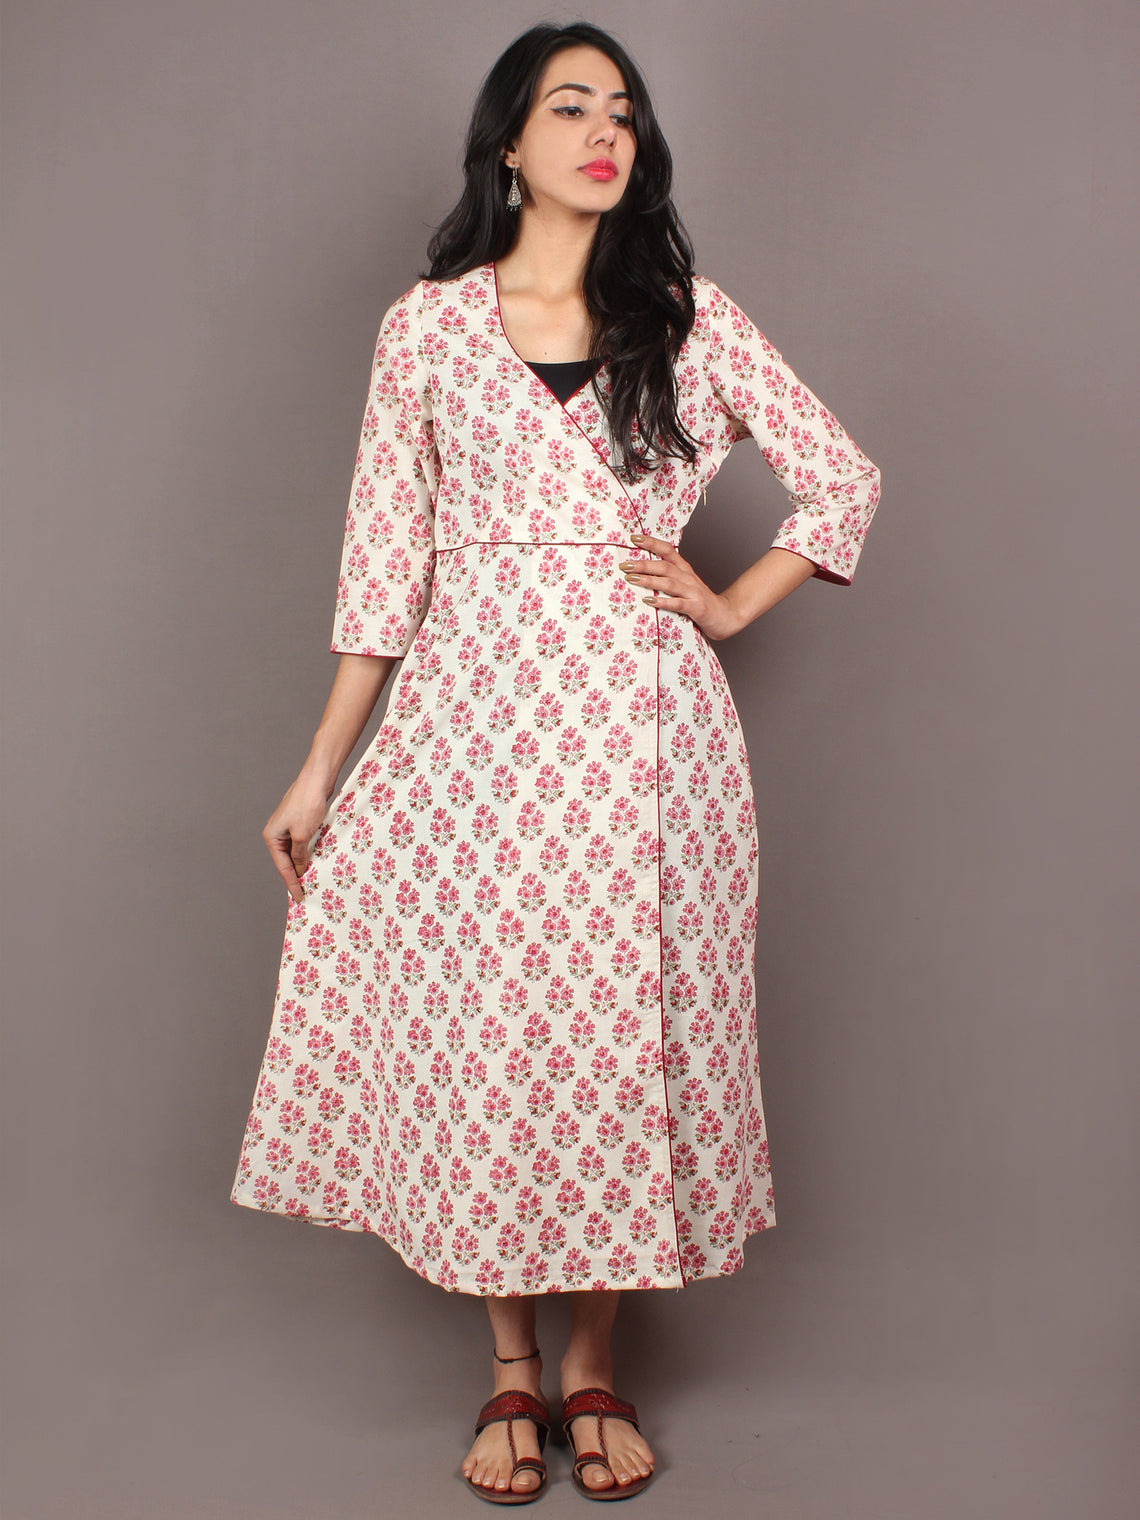 White Pink Mint Green Hand Block Printed Long Cotton Angrakha Dress - D2012301